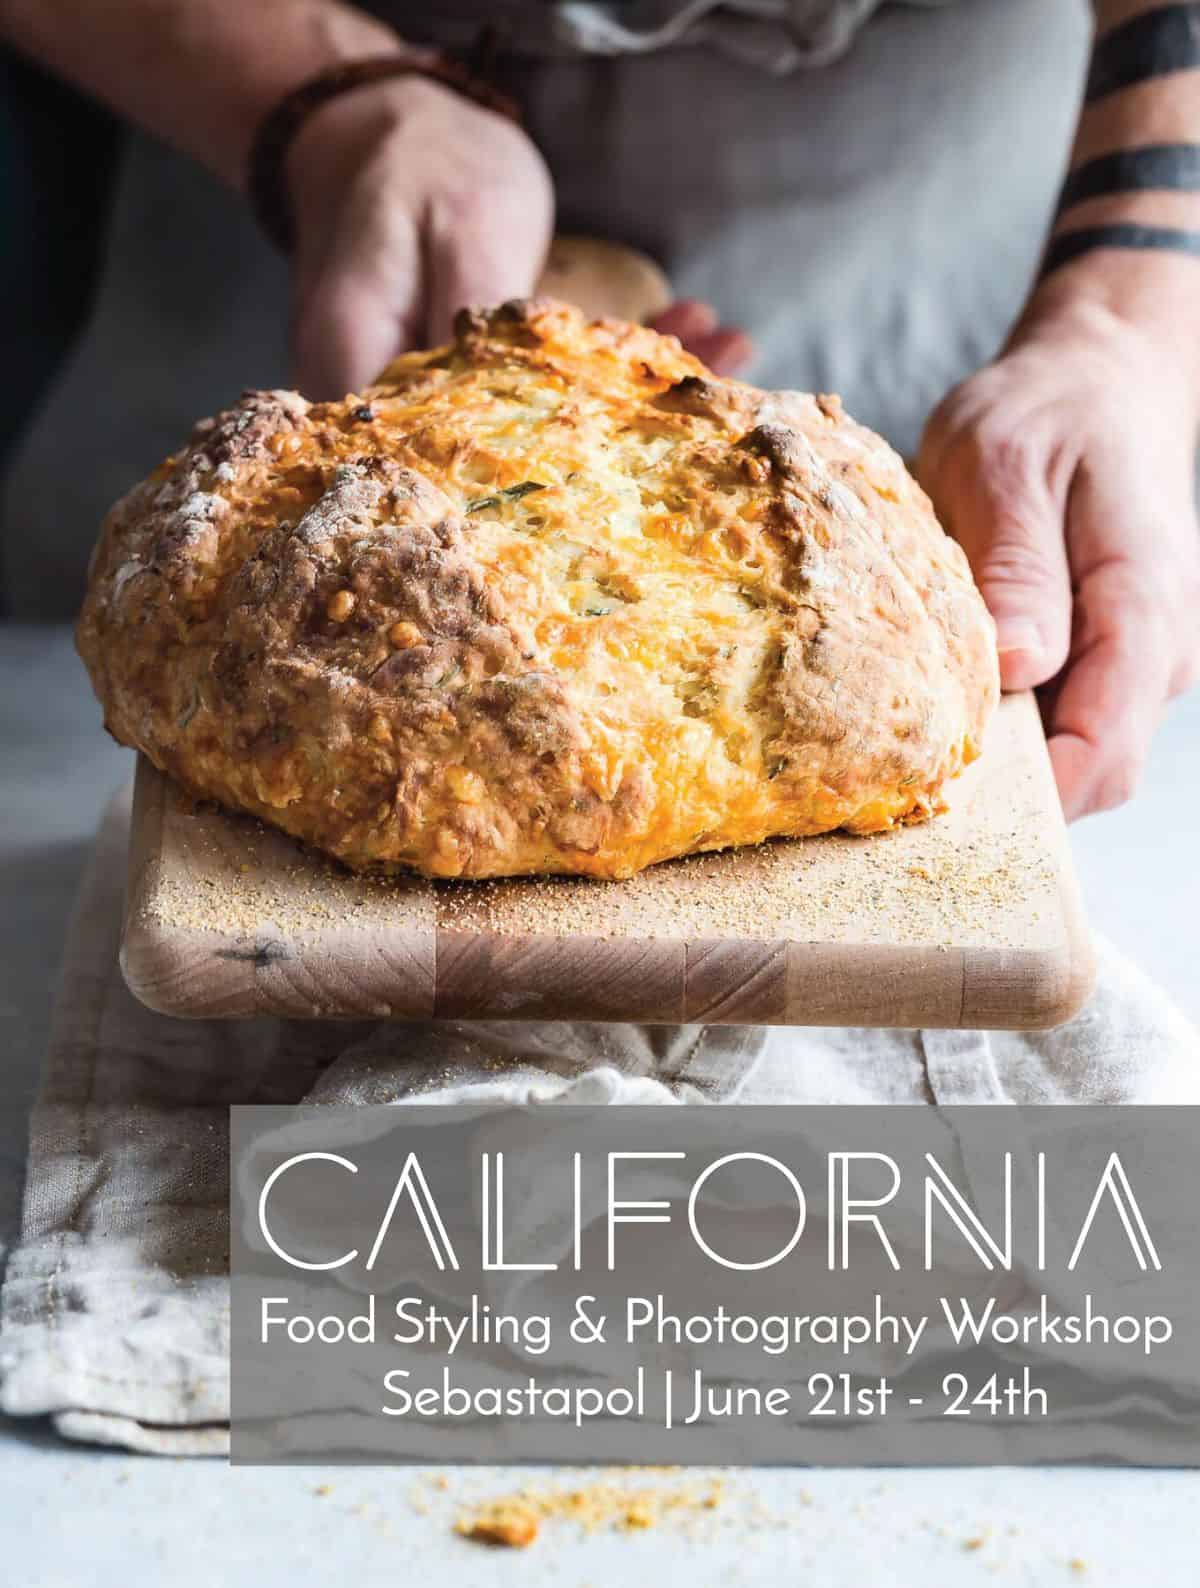 Join myself, Gerry of Foodness Gracious, Alanna of The Bojon Gourmet, & Sarah of Snixy Kitchen for a three-day food styling and photography workshop where you'll experience intensive hands-on styling, photographing, and editing sessions in a beautiful craftsman home in wine country | June 21st-24th, 2017.